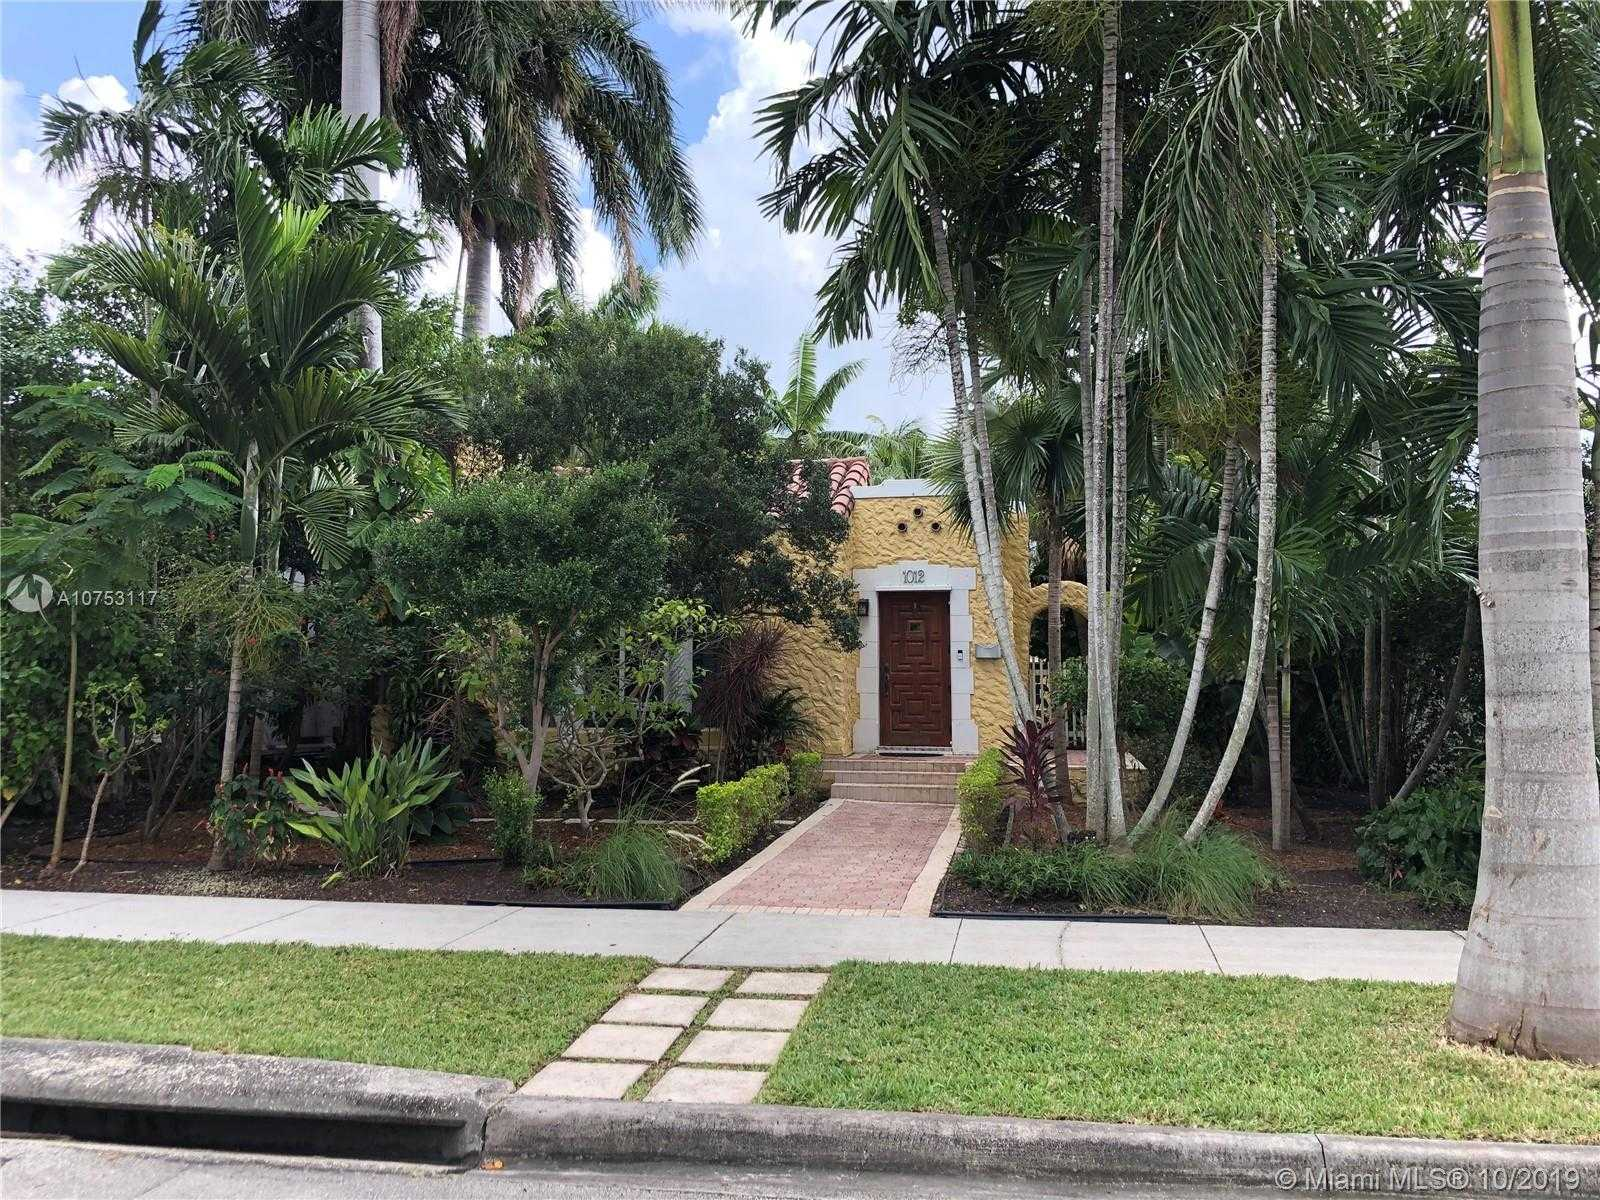 $529,900 - 3Br/2Ba -  for Sale in Hollywood Lakes Sec, Hollywood